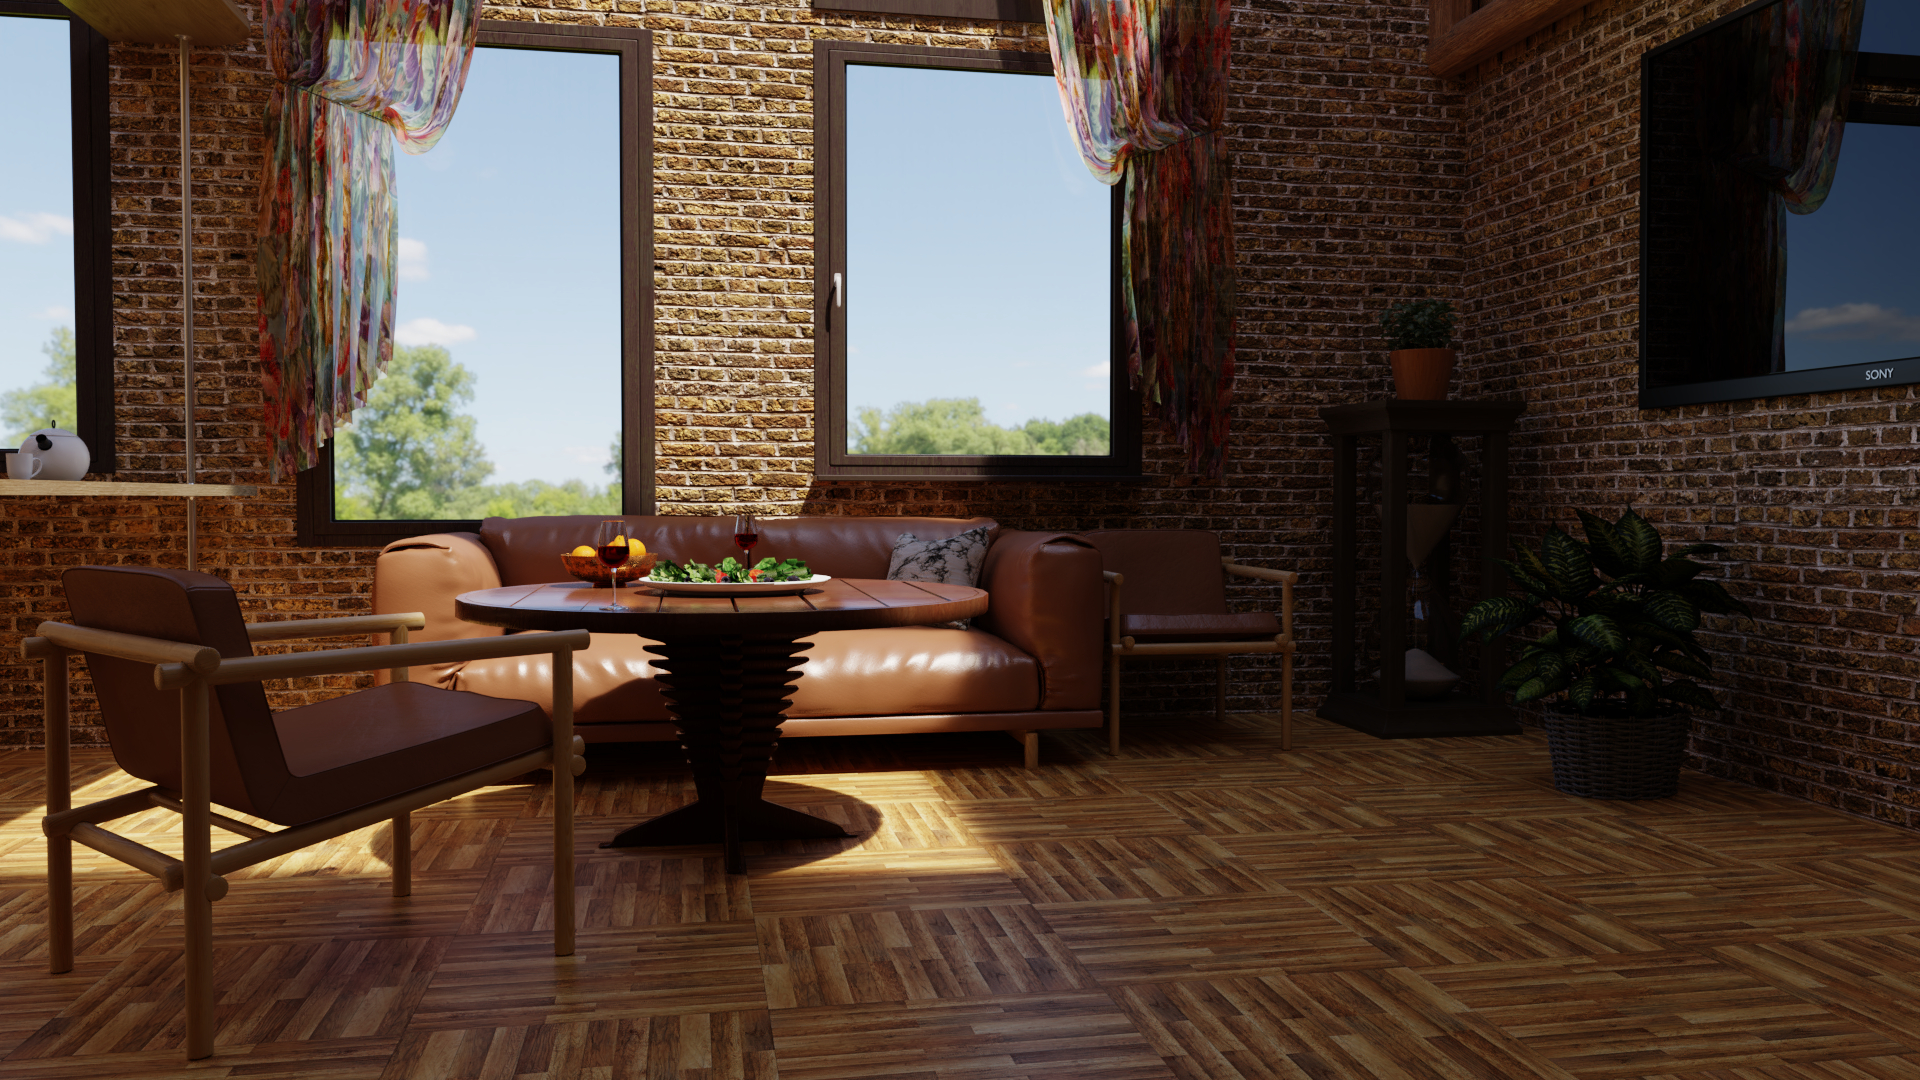 CUISINE LIVING ROOM in Blender cycles render image